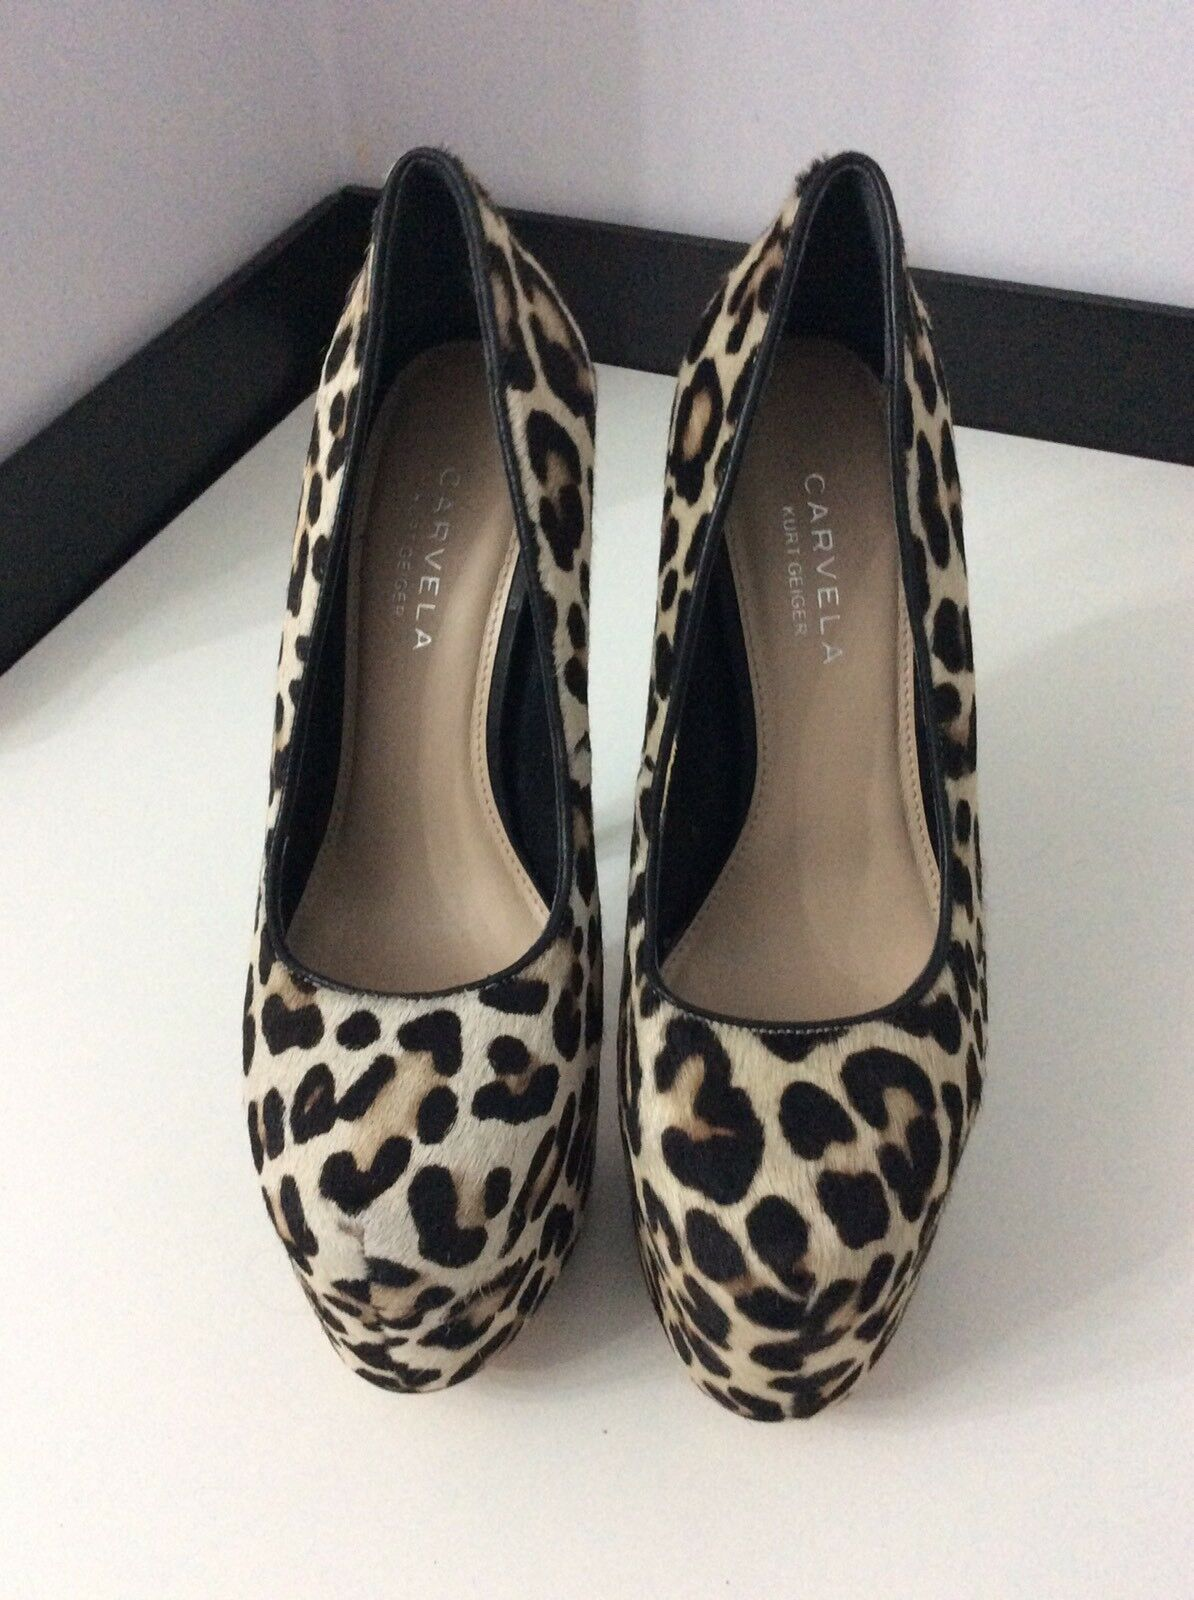 CARVELA By Kurt Geiger Kg Hair New Ex Display Pony Hair Kg Leopard Court Schuhes 39 Uk 6 4f359e